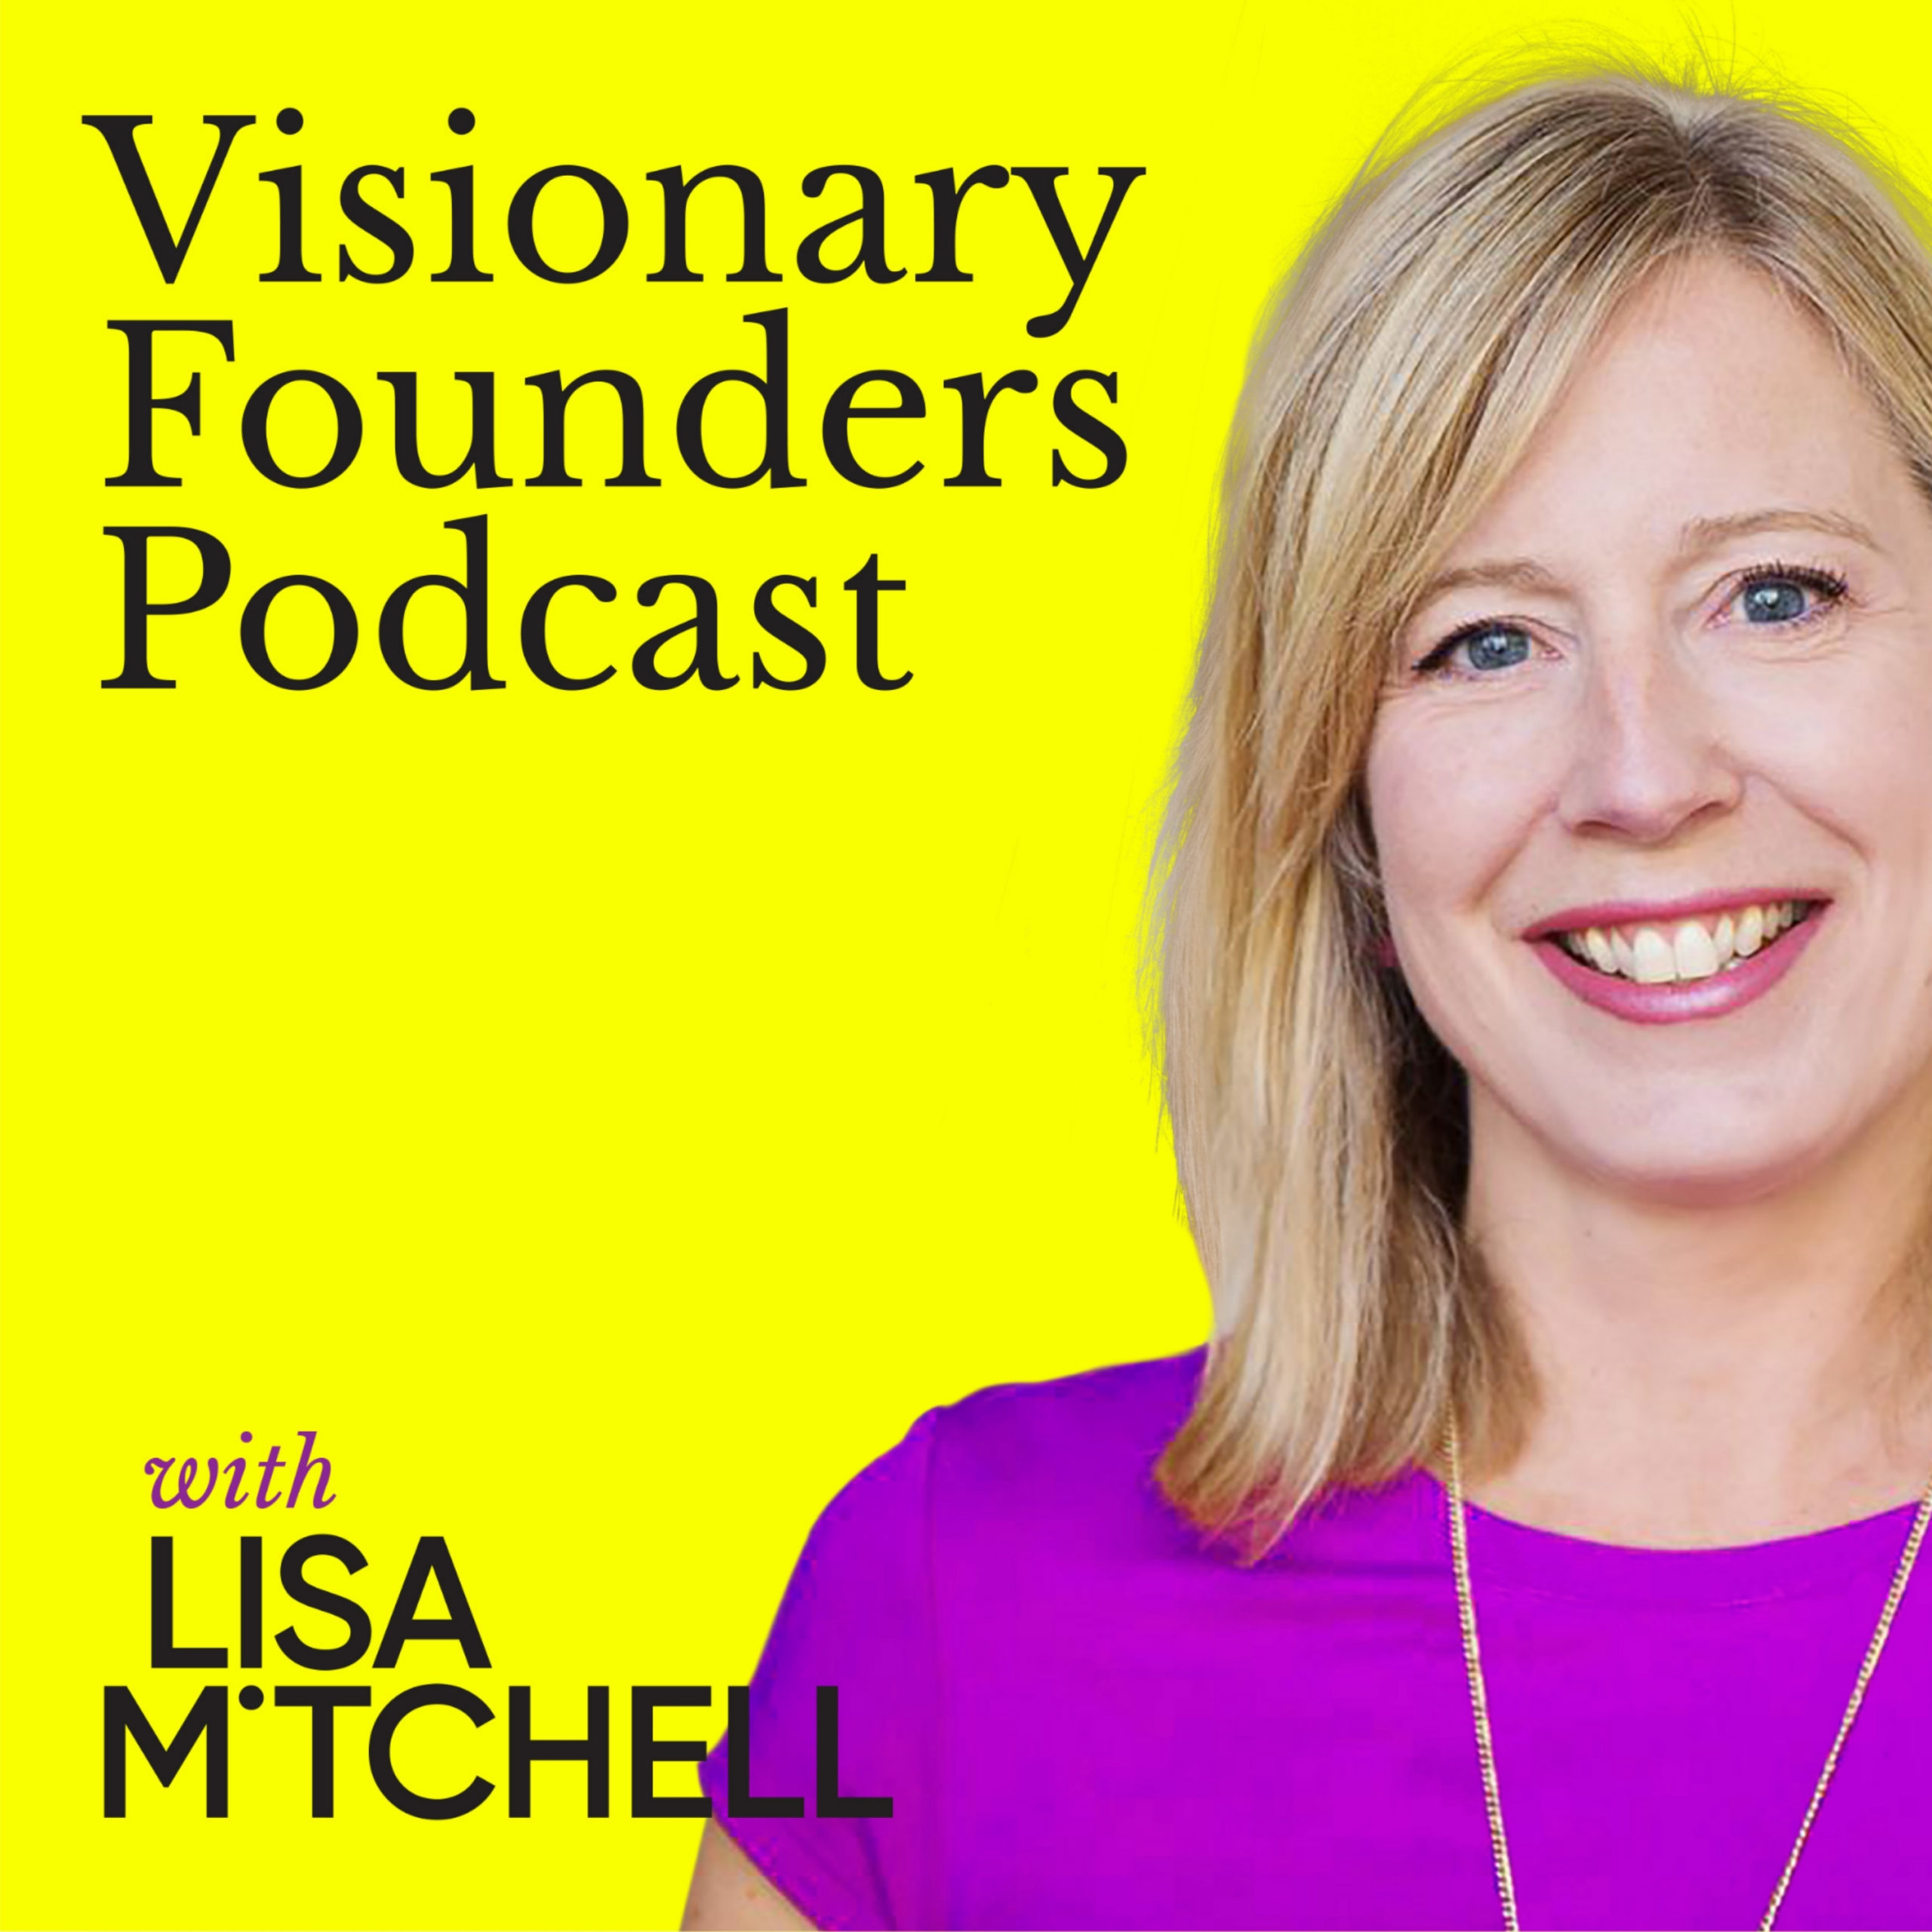 Lisa Mitchell Visionary Founders Podcast